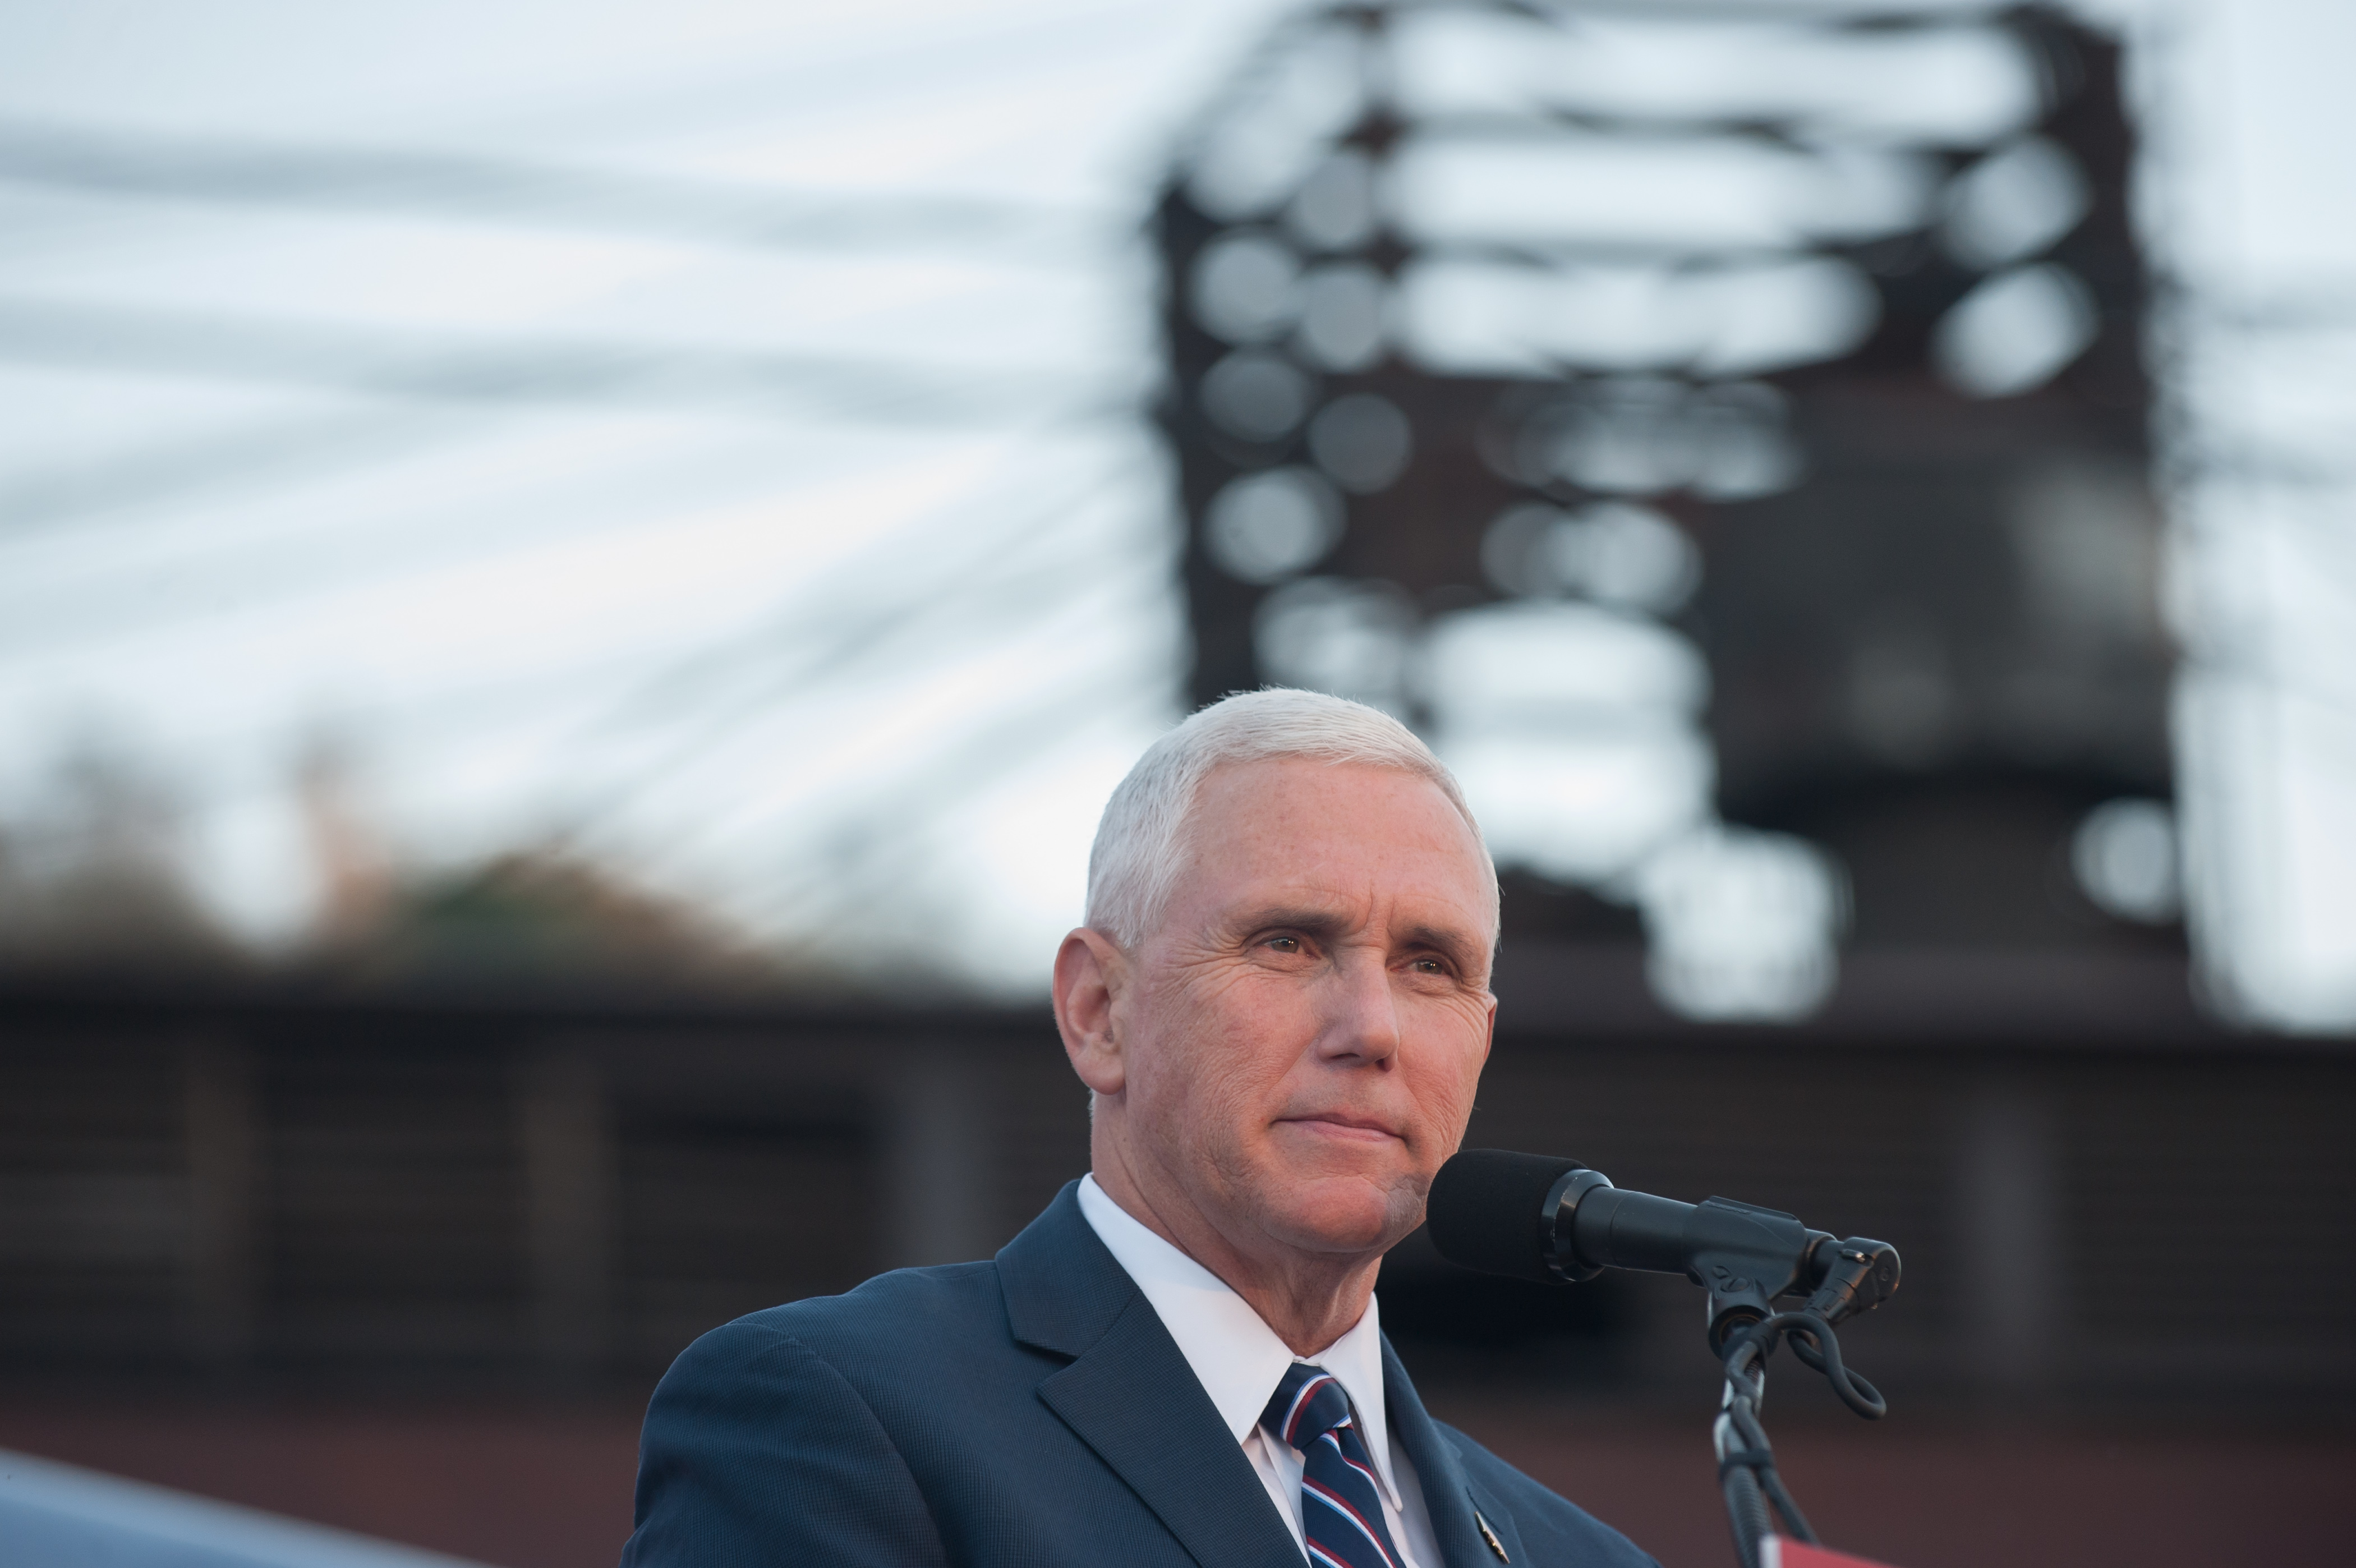 Mike Pence Campaigns In Depressed Rust Belt Town Of Johnstown, PA